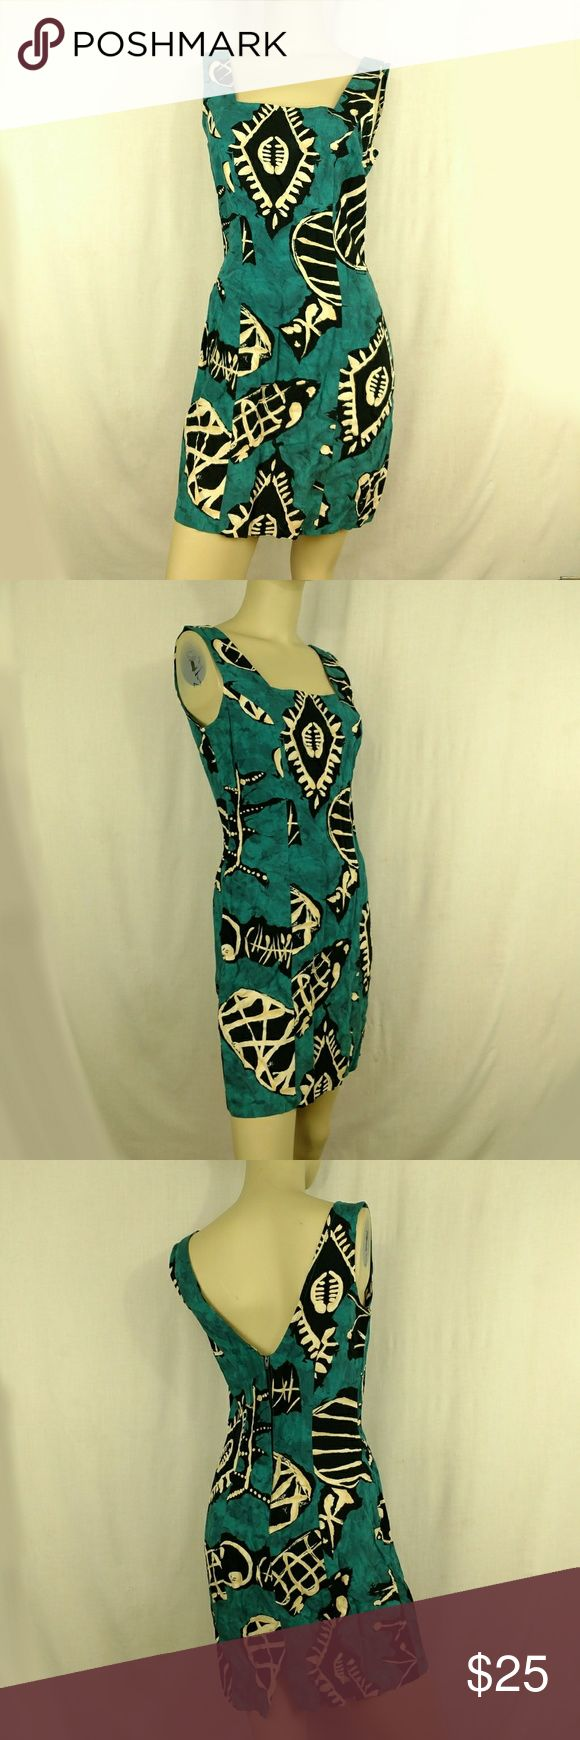 ALL THAT JAZZ Vintage Hawaiian style. 9 / 10 ALL THAT JAZZ Vintage Aztec print Hawaiian Sleeveless Dress Womens size  9 / 10 This is a vintage item in new condition. Measurements are in detailed description.   (G) All That Jazz Dresses